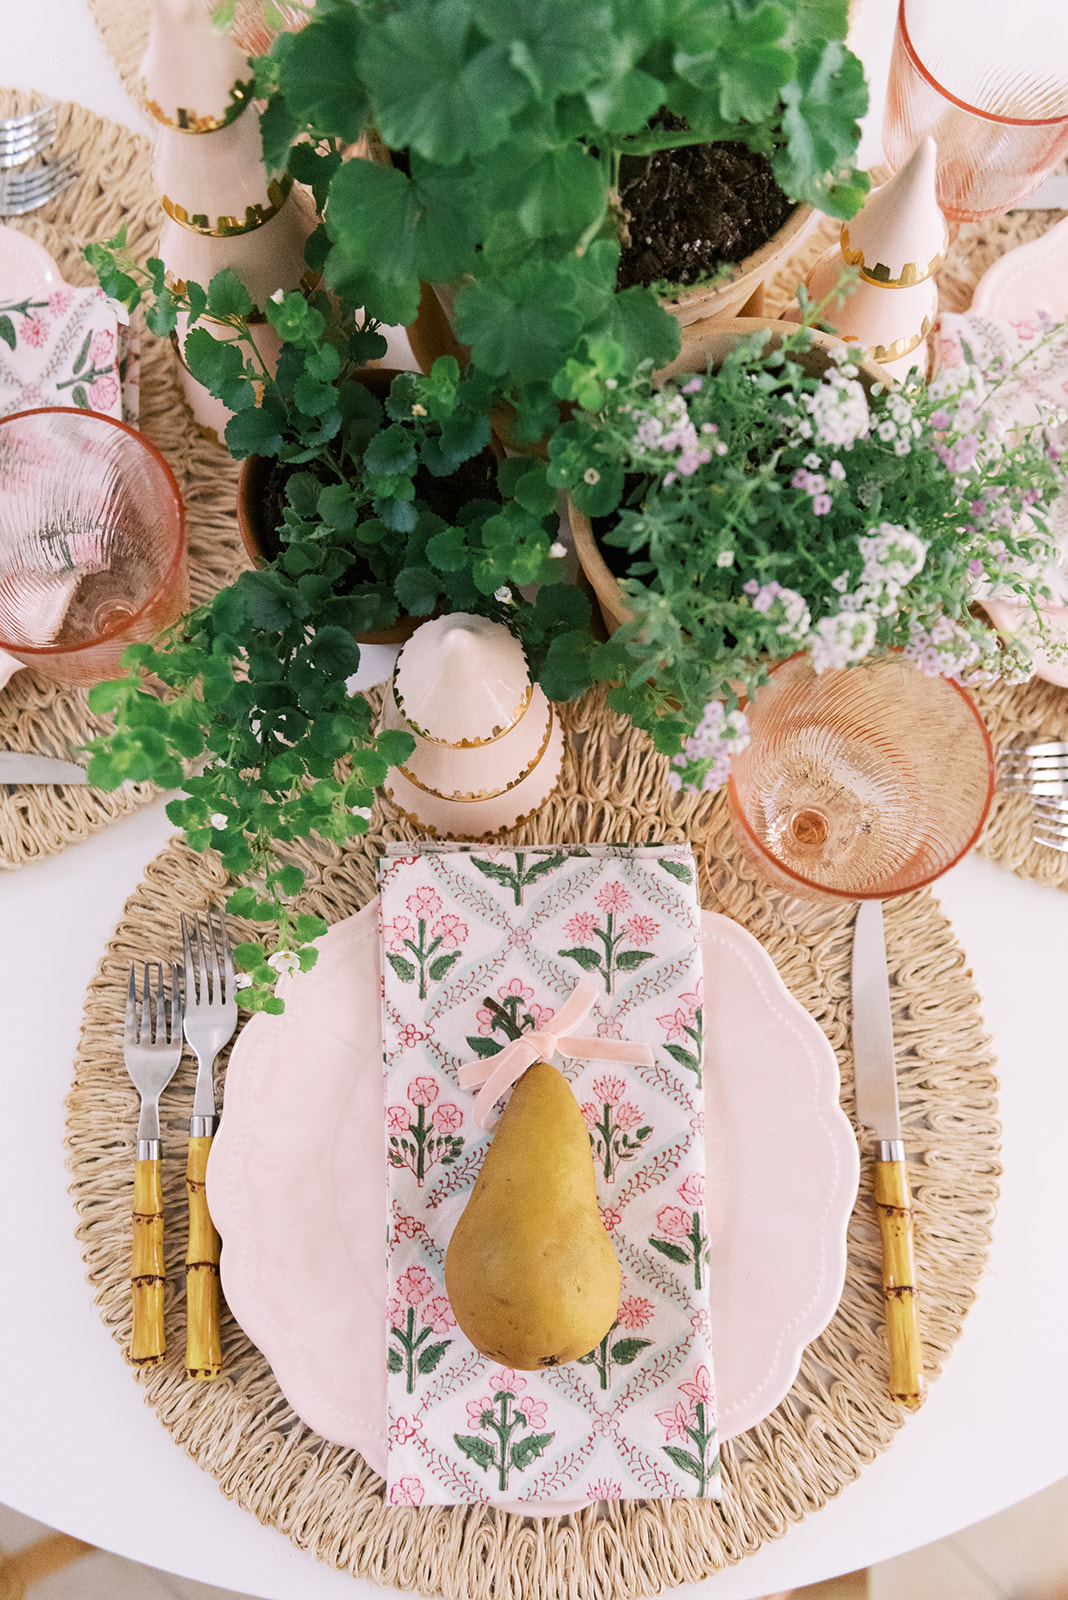 Holidays at Home: Tablescape with Palm Beach Lately